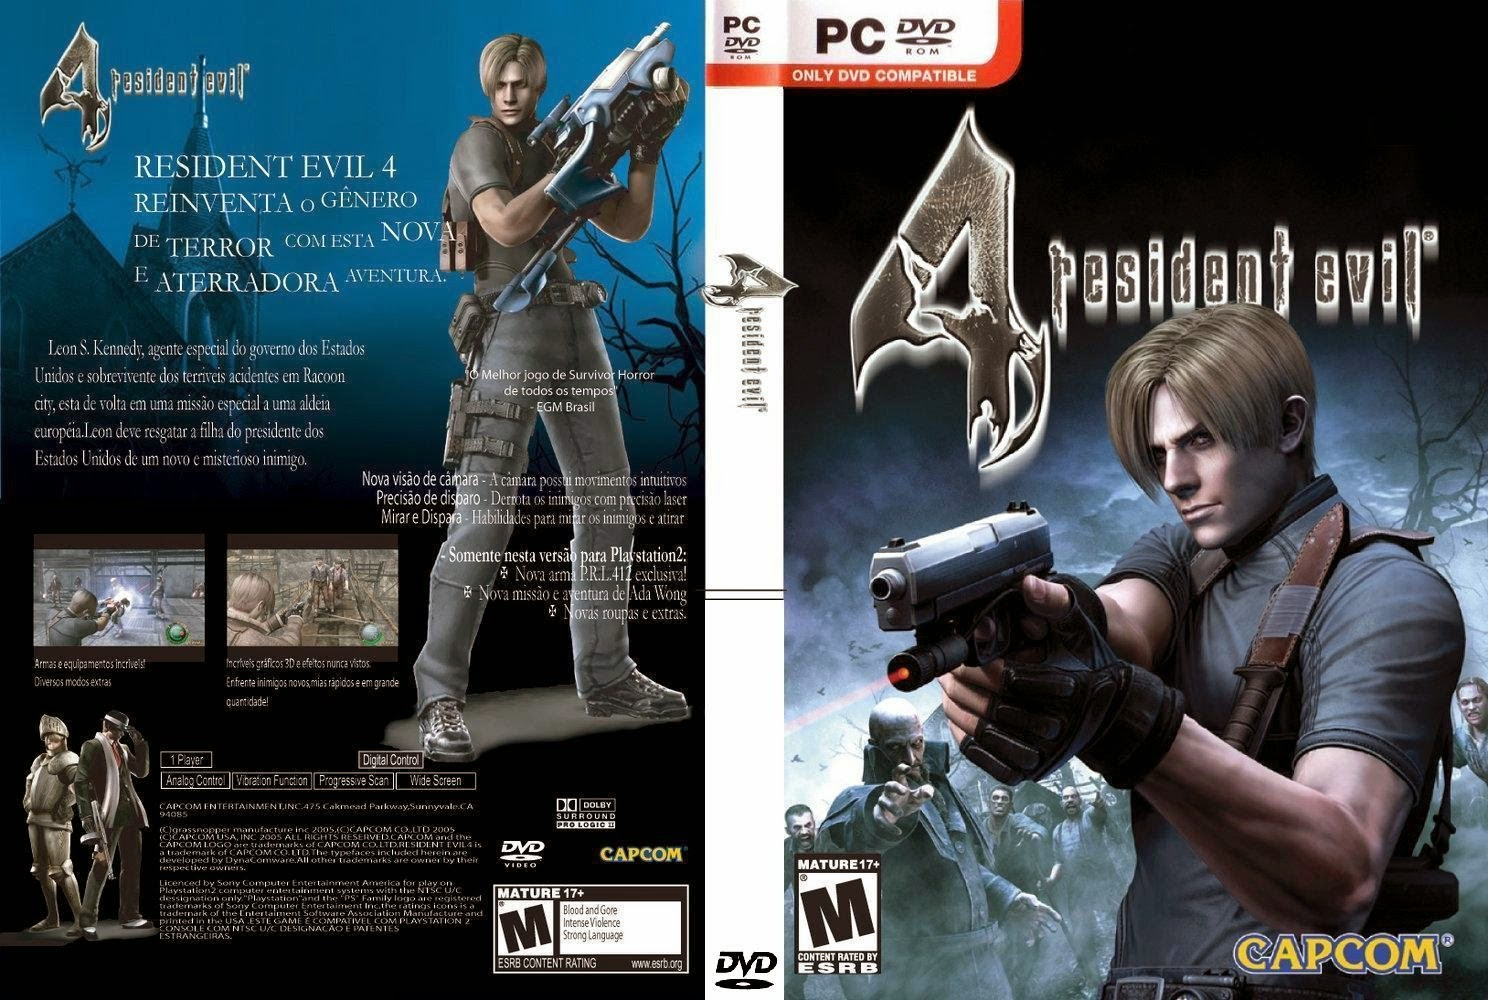 Resident evil 4 iso psp torrent download linoanc.